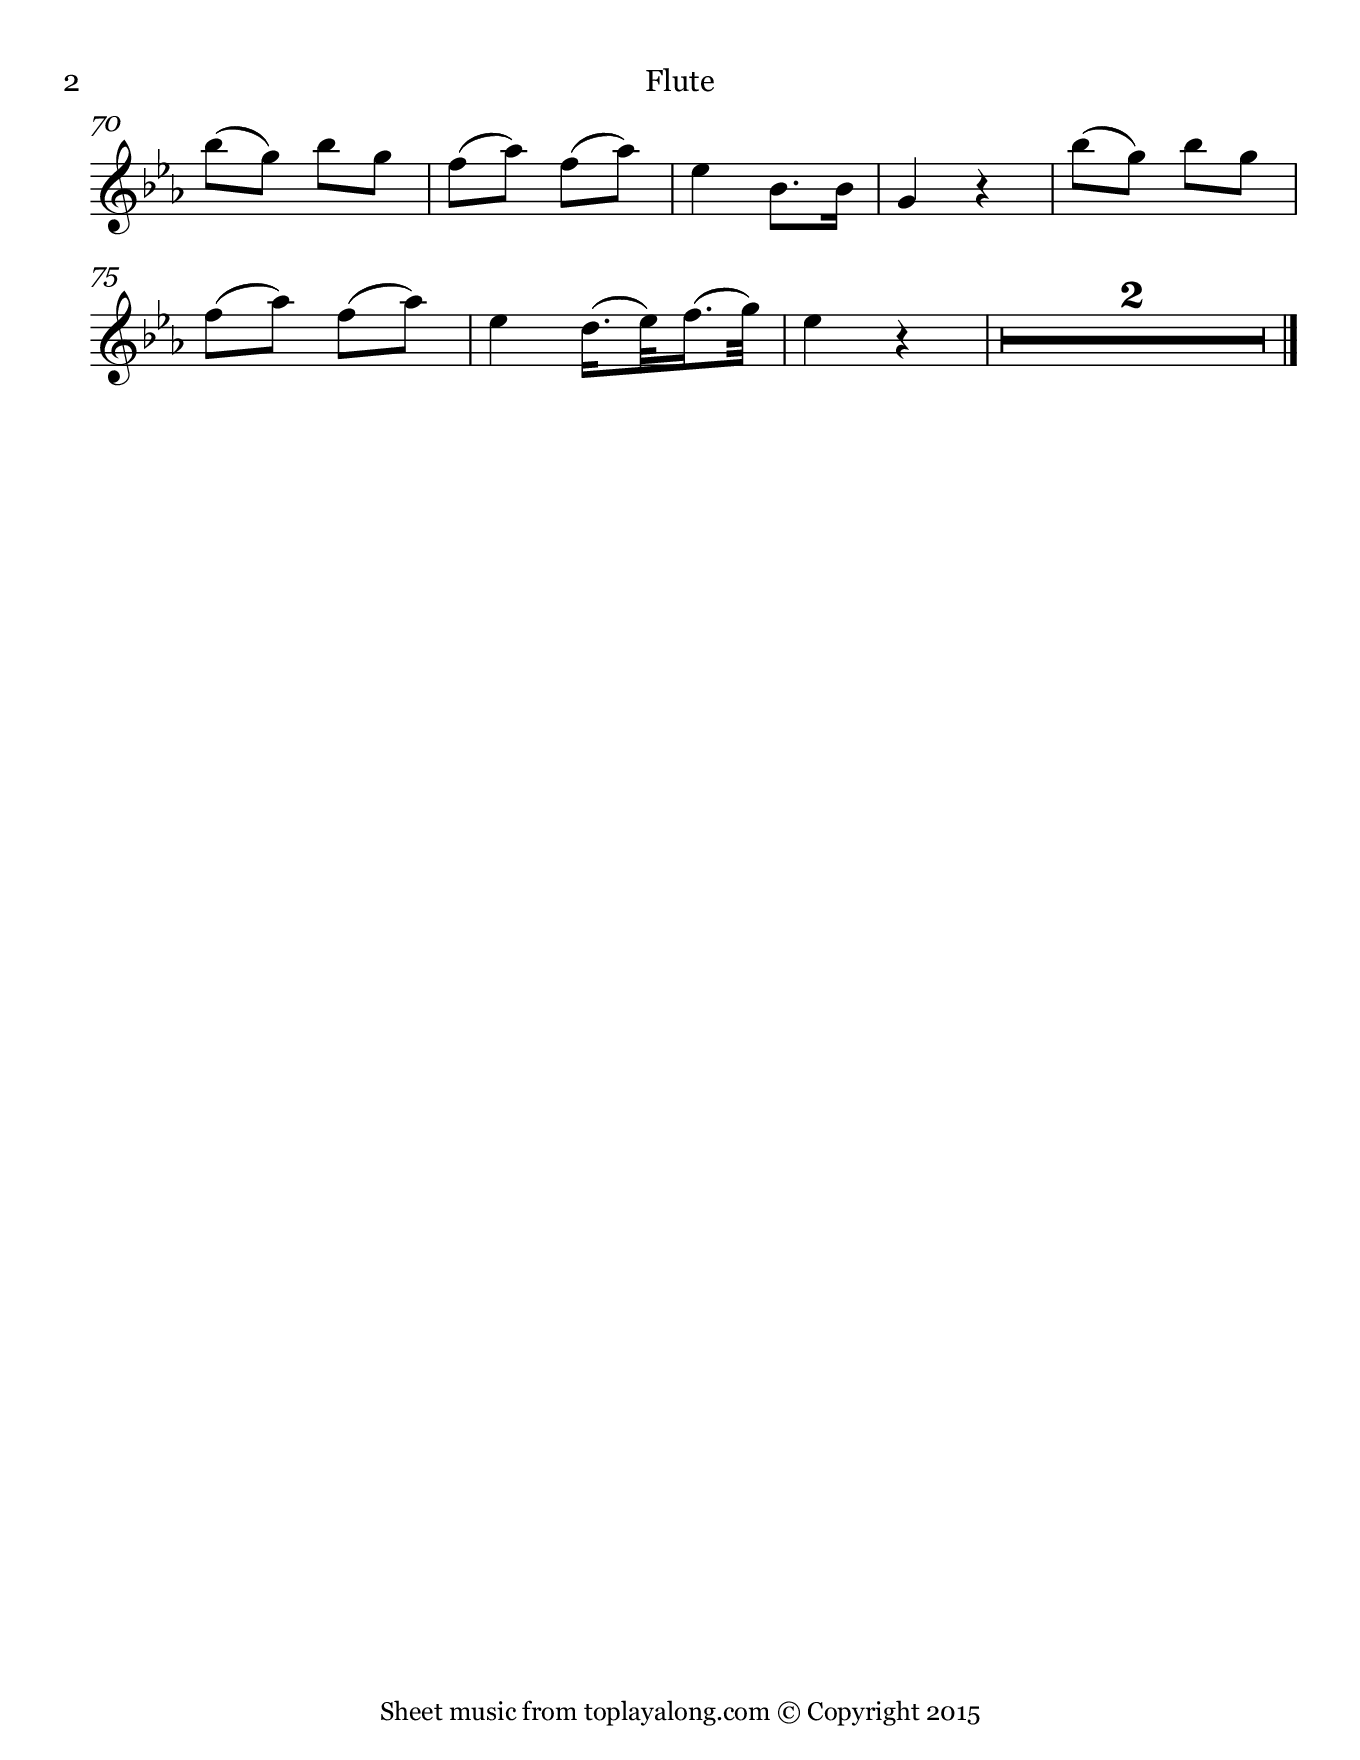 Voi che sapete from The Marriage of Figaro by Mozart. Sheet music for Flute, page 2.